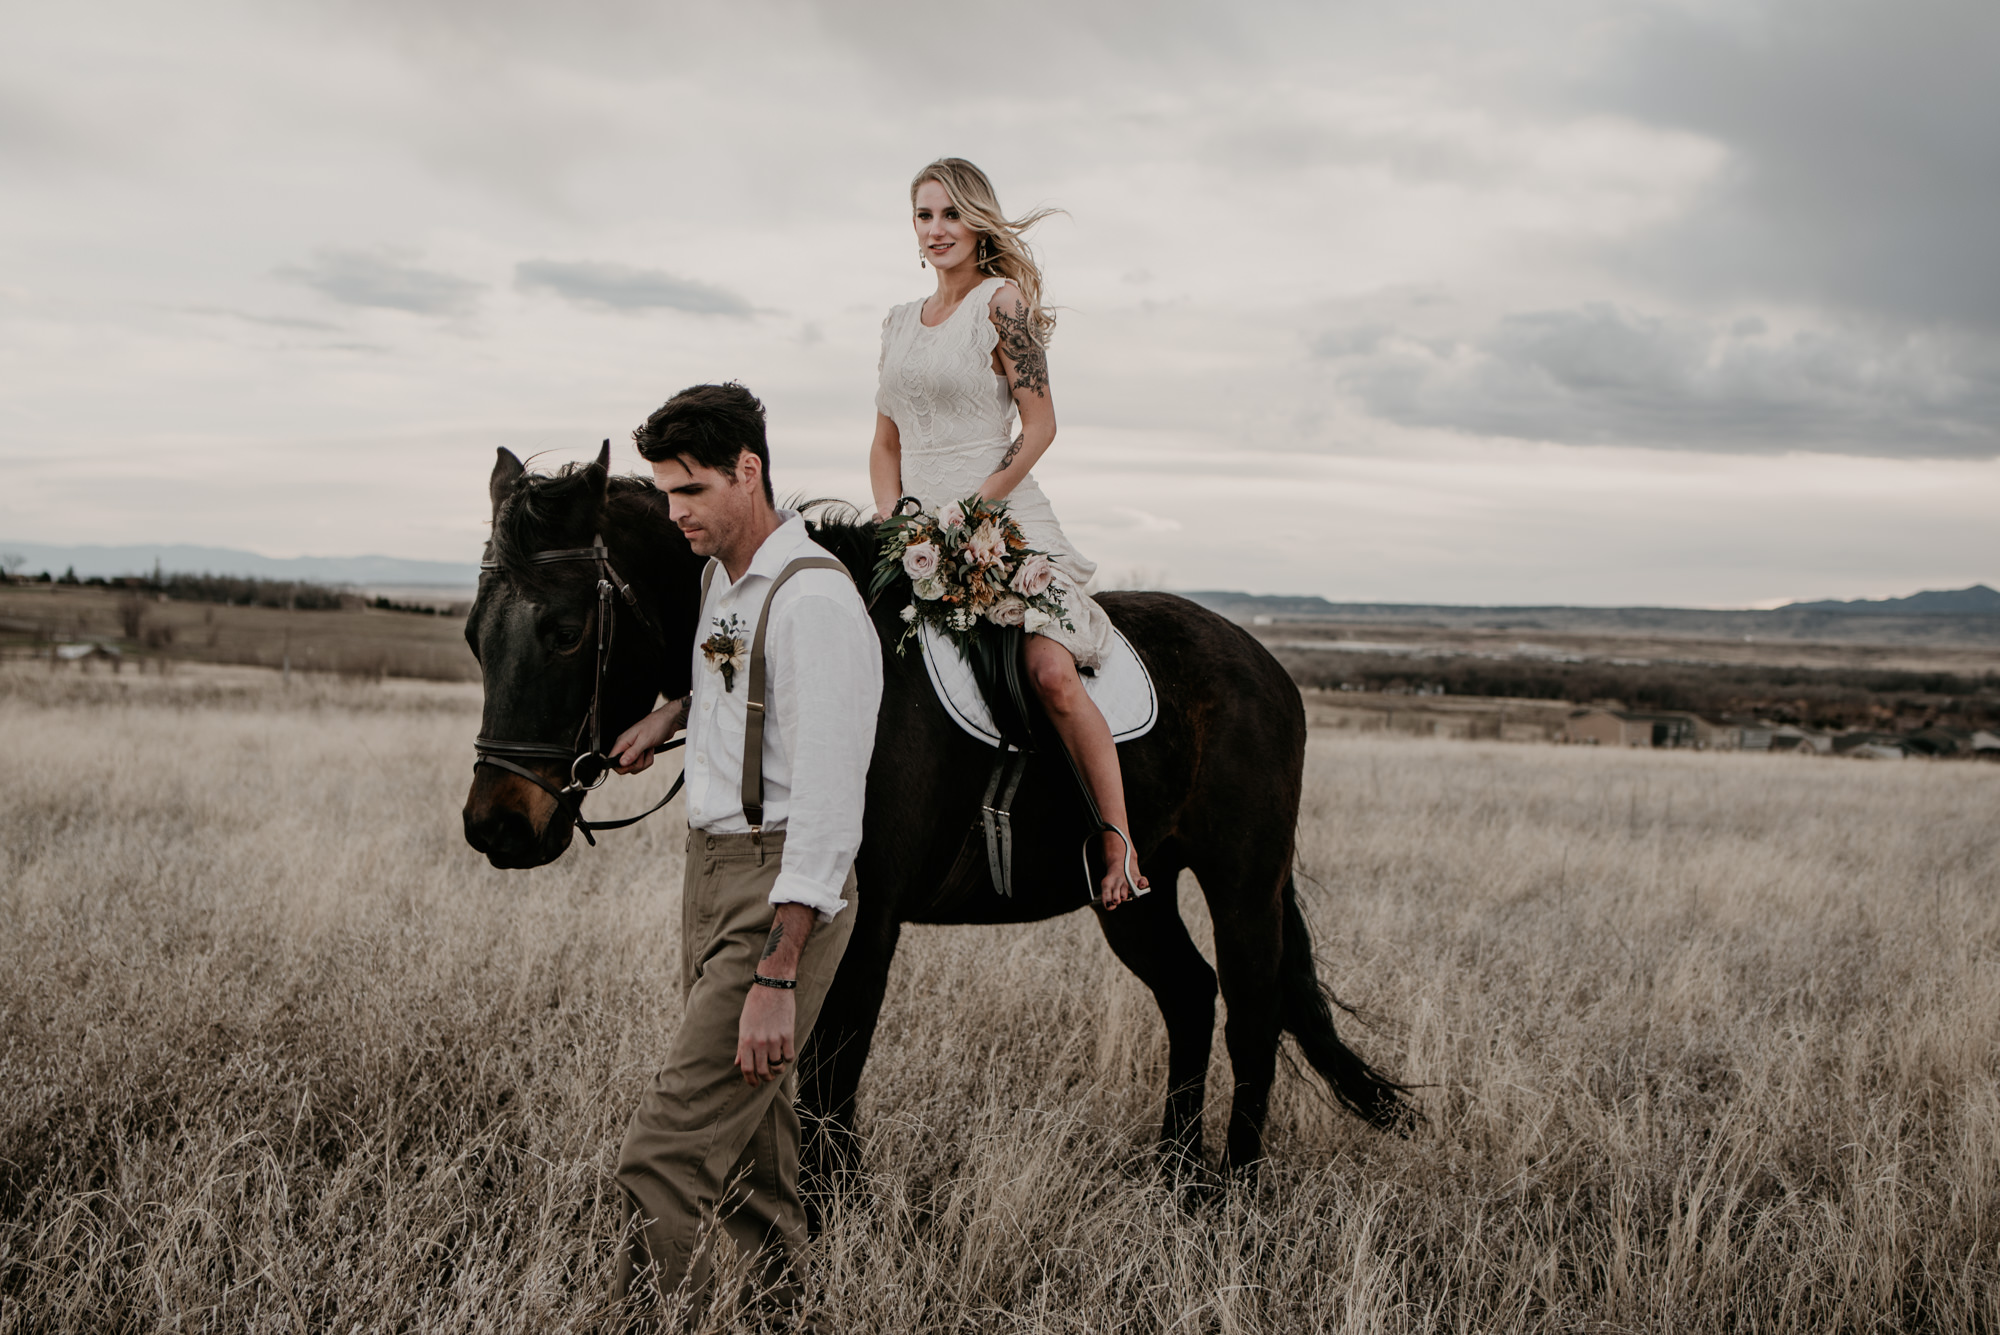 A woman in a white wedding dress rides a black horse led by the groom.